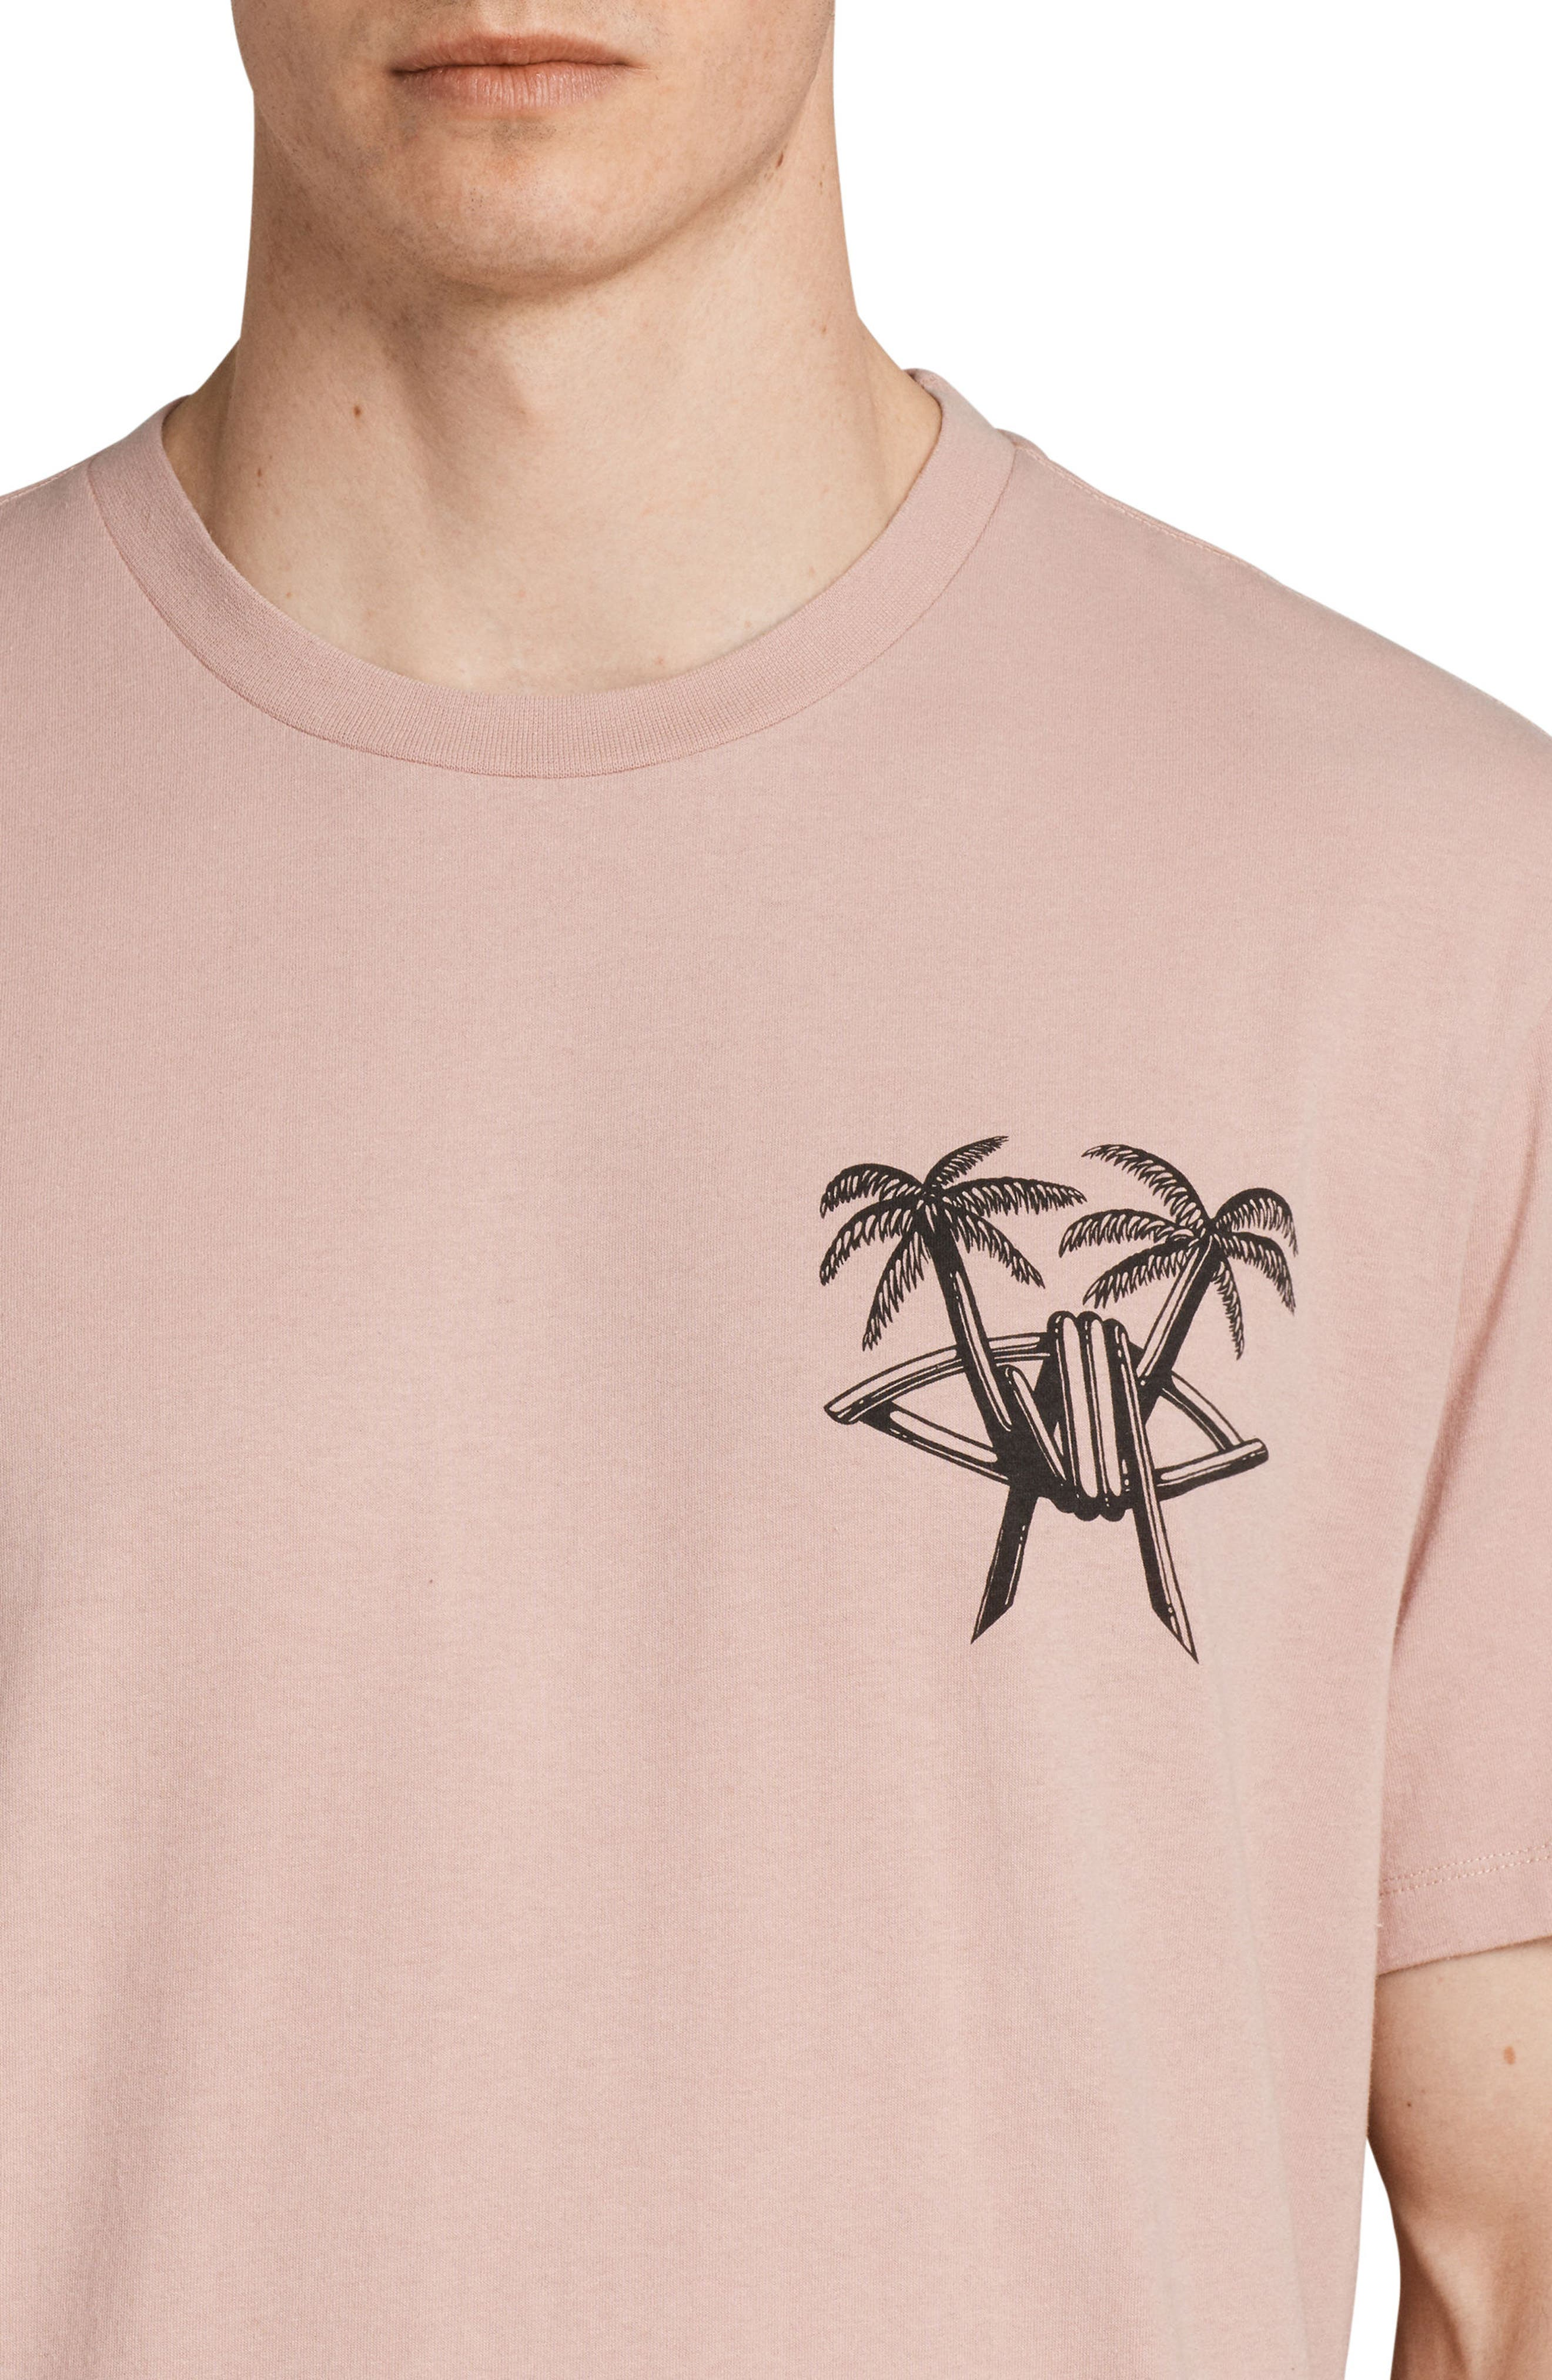 Barbed Palm Short Sleeve T-Shirt,                             Alternate thumbnail 4, color,                             Crepe Pink